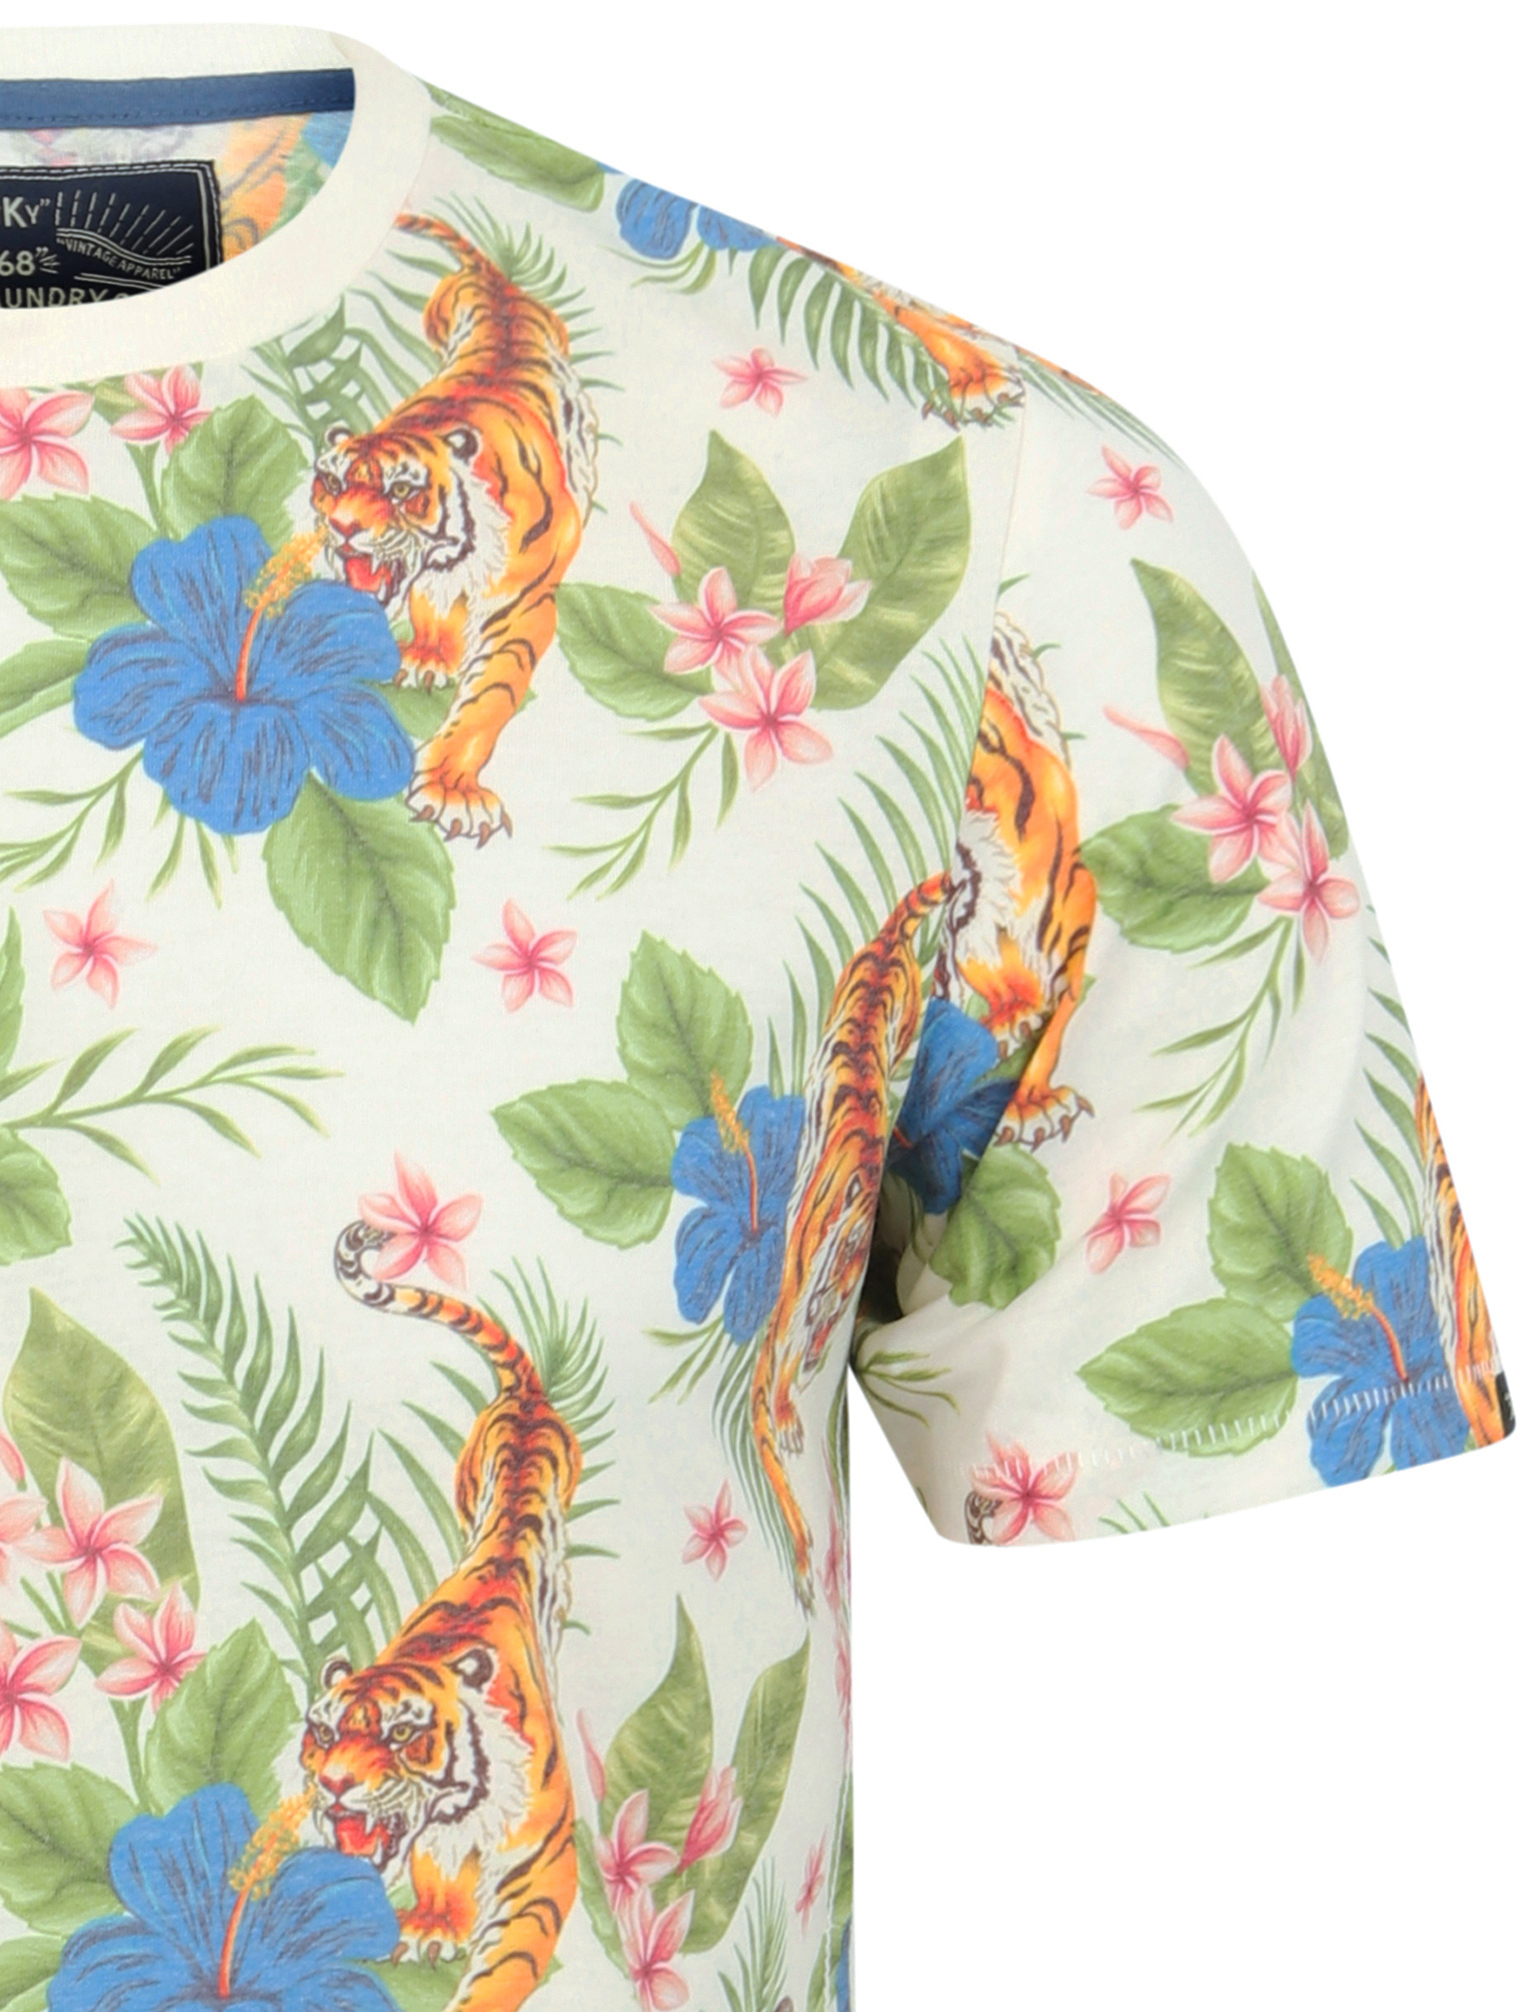 thumbnail 21 - Tokyo-Laundry-Tropical-Print-Crew-Neck-T-Shirt-Hawaiian-Floral-Summer-Holiday